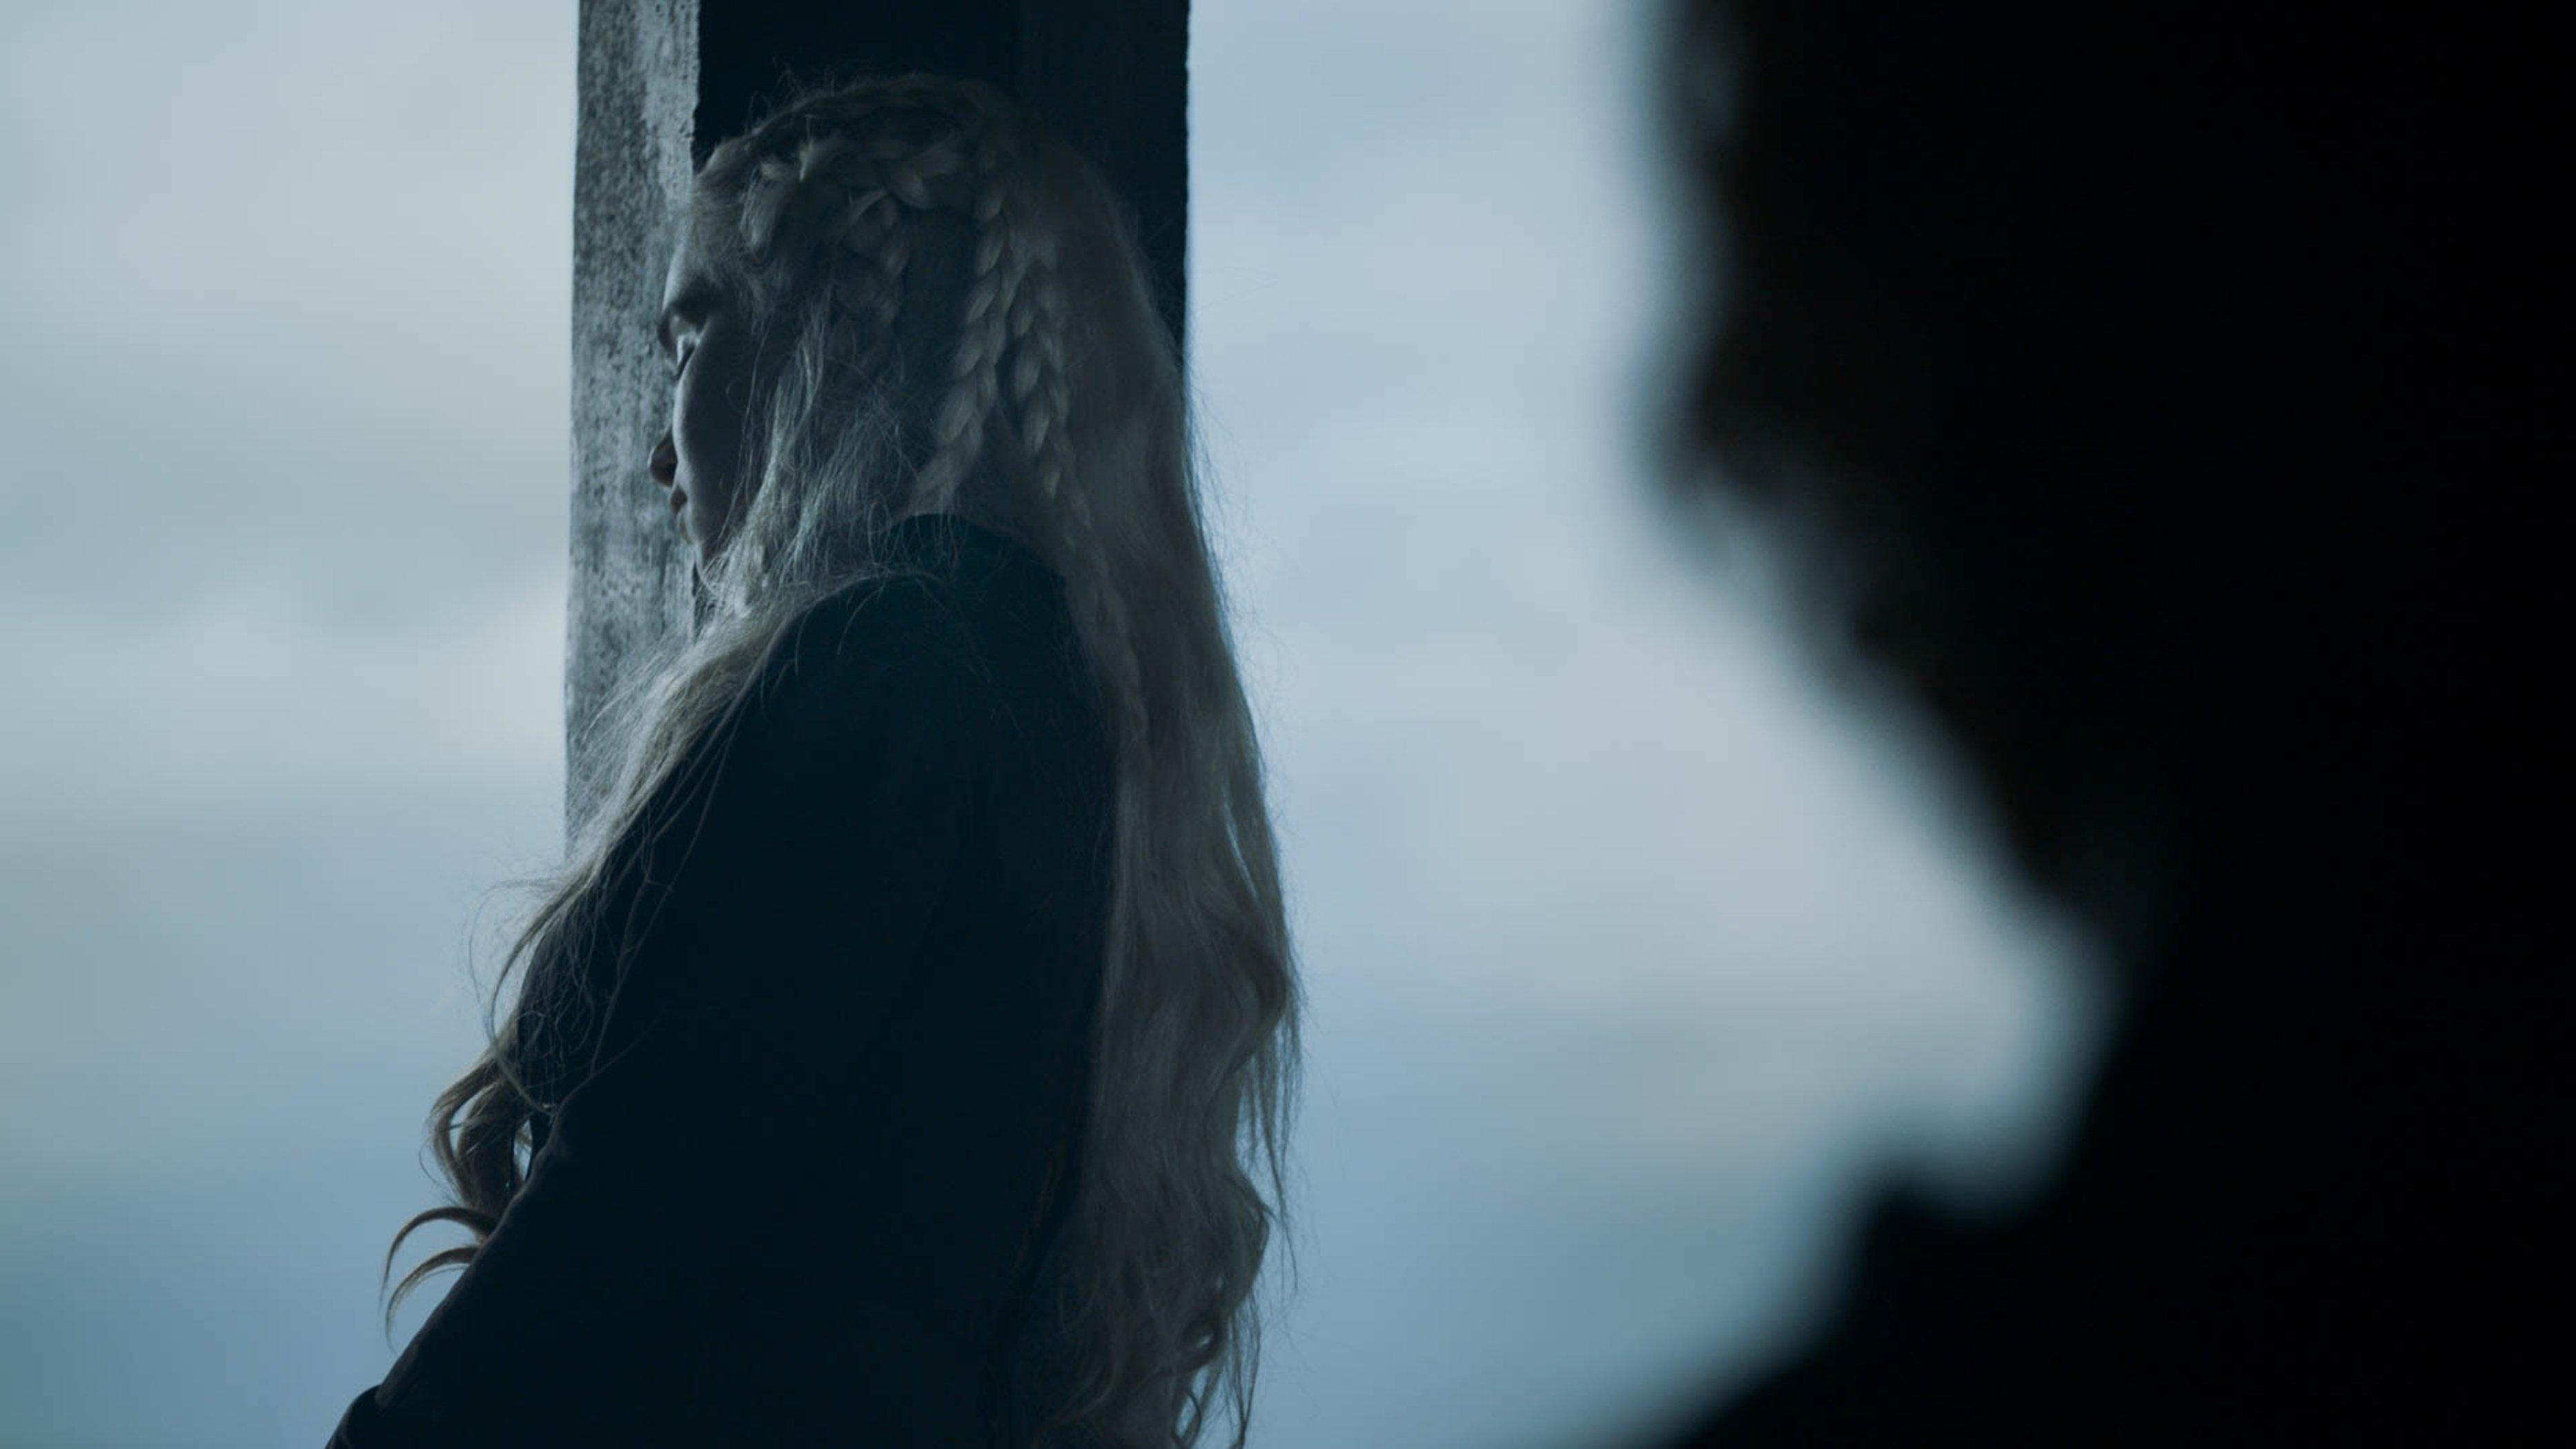 Daenerys Targaryan has officially turned into the Mad Queen on Game of Thrones. But it feels unfair to the character.